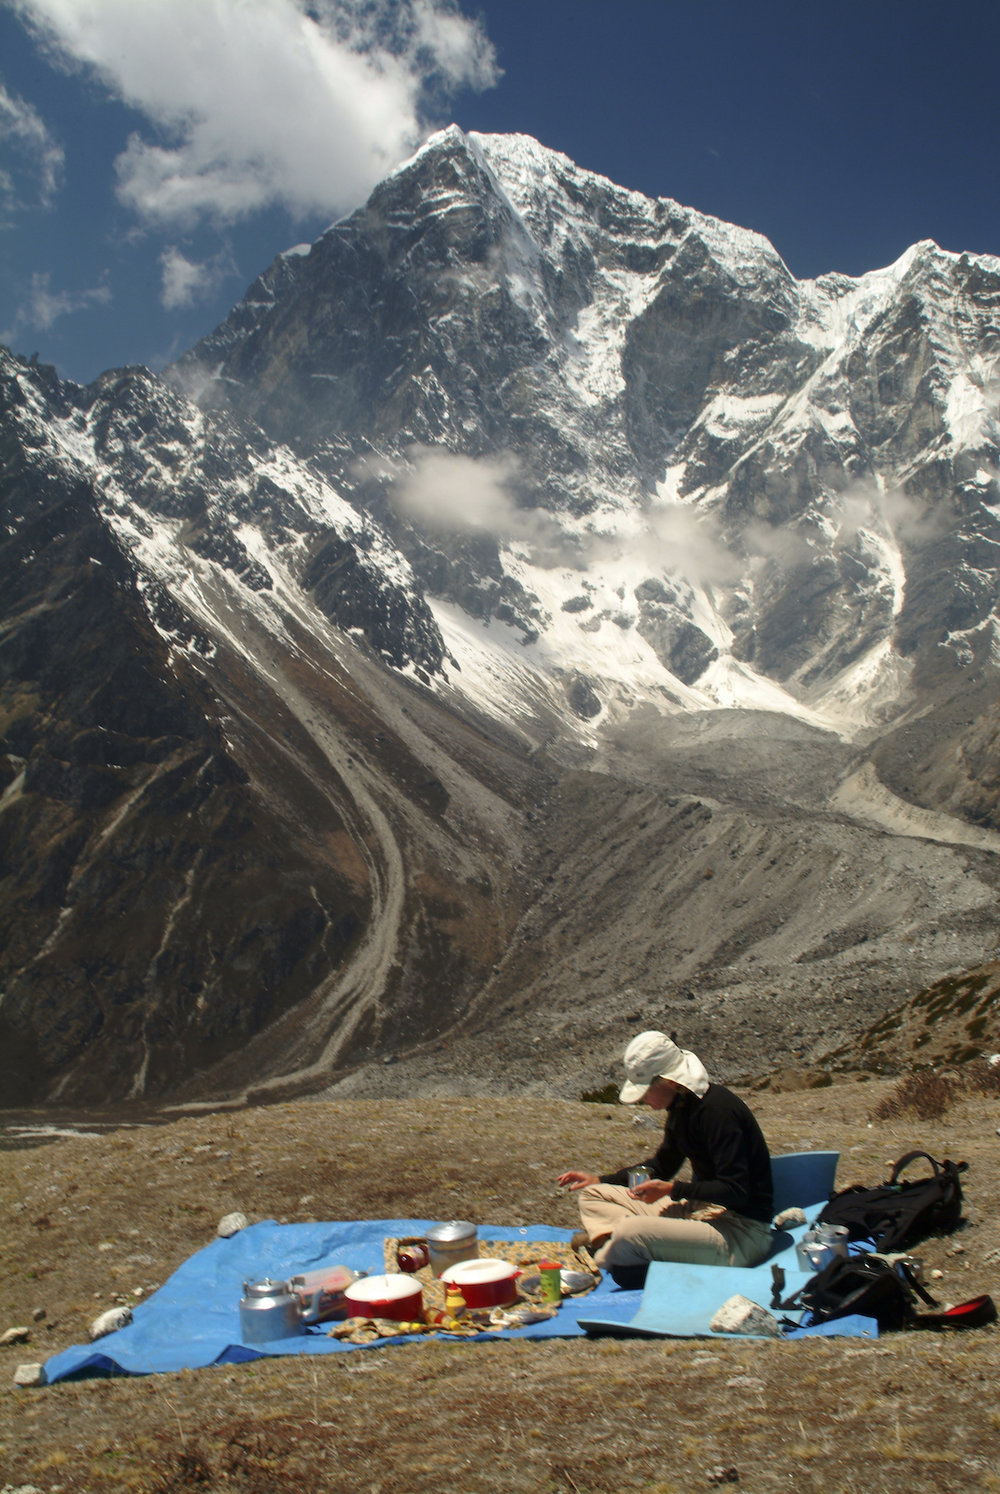 a trekker enjoys lunch on the way to Mount Everest Base Camp in the Nepal Himalayas.  Image by New Orleans based travel photographer, Marc Pagani - marcpagani.com